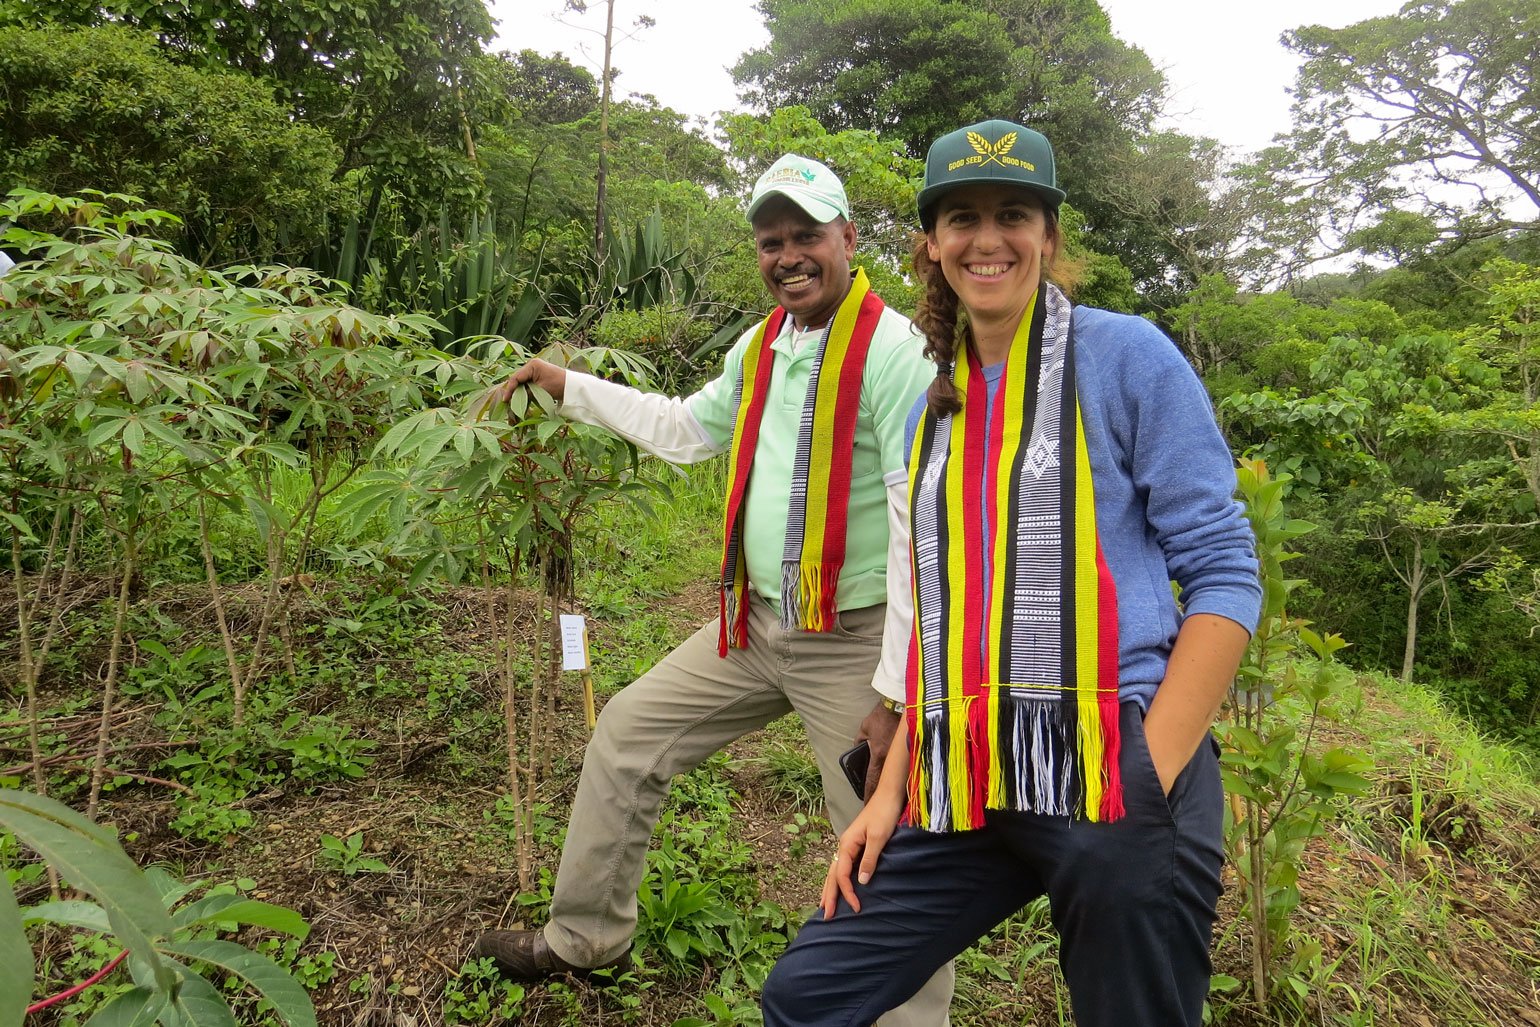 A man and a woman smile at the camera while standing in a sloped farm field where bushes, trees and smaller crops are growing.